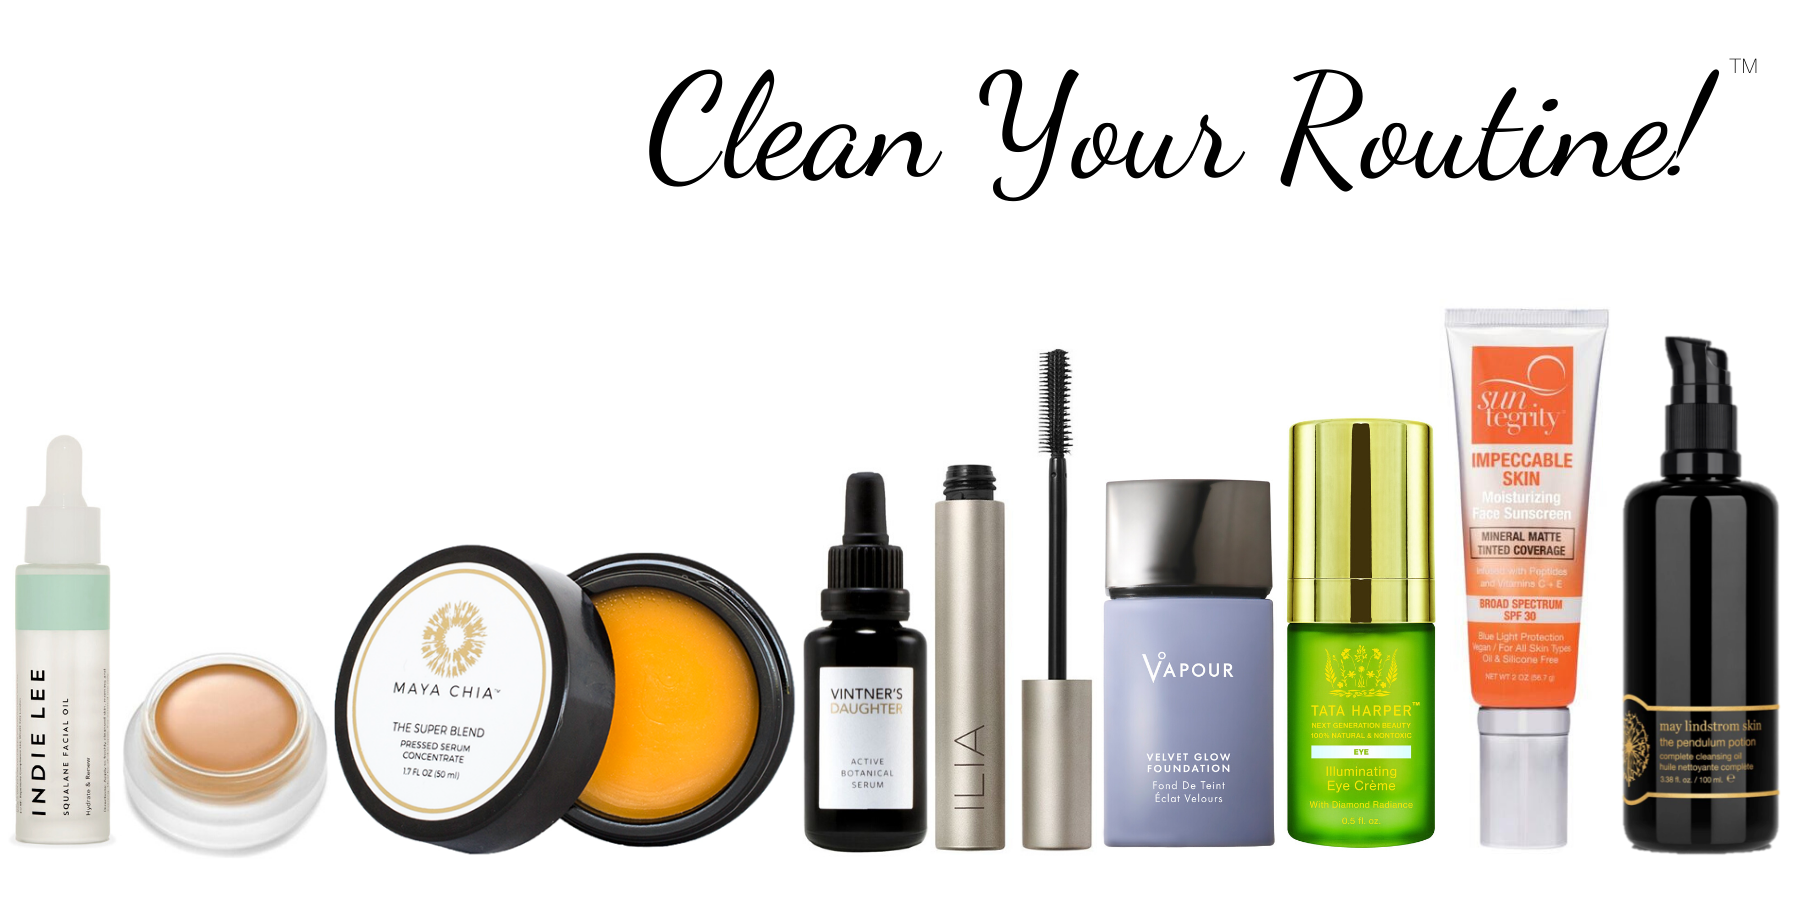 clean your routine! assortment of products